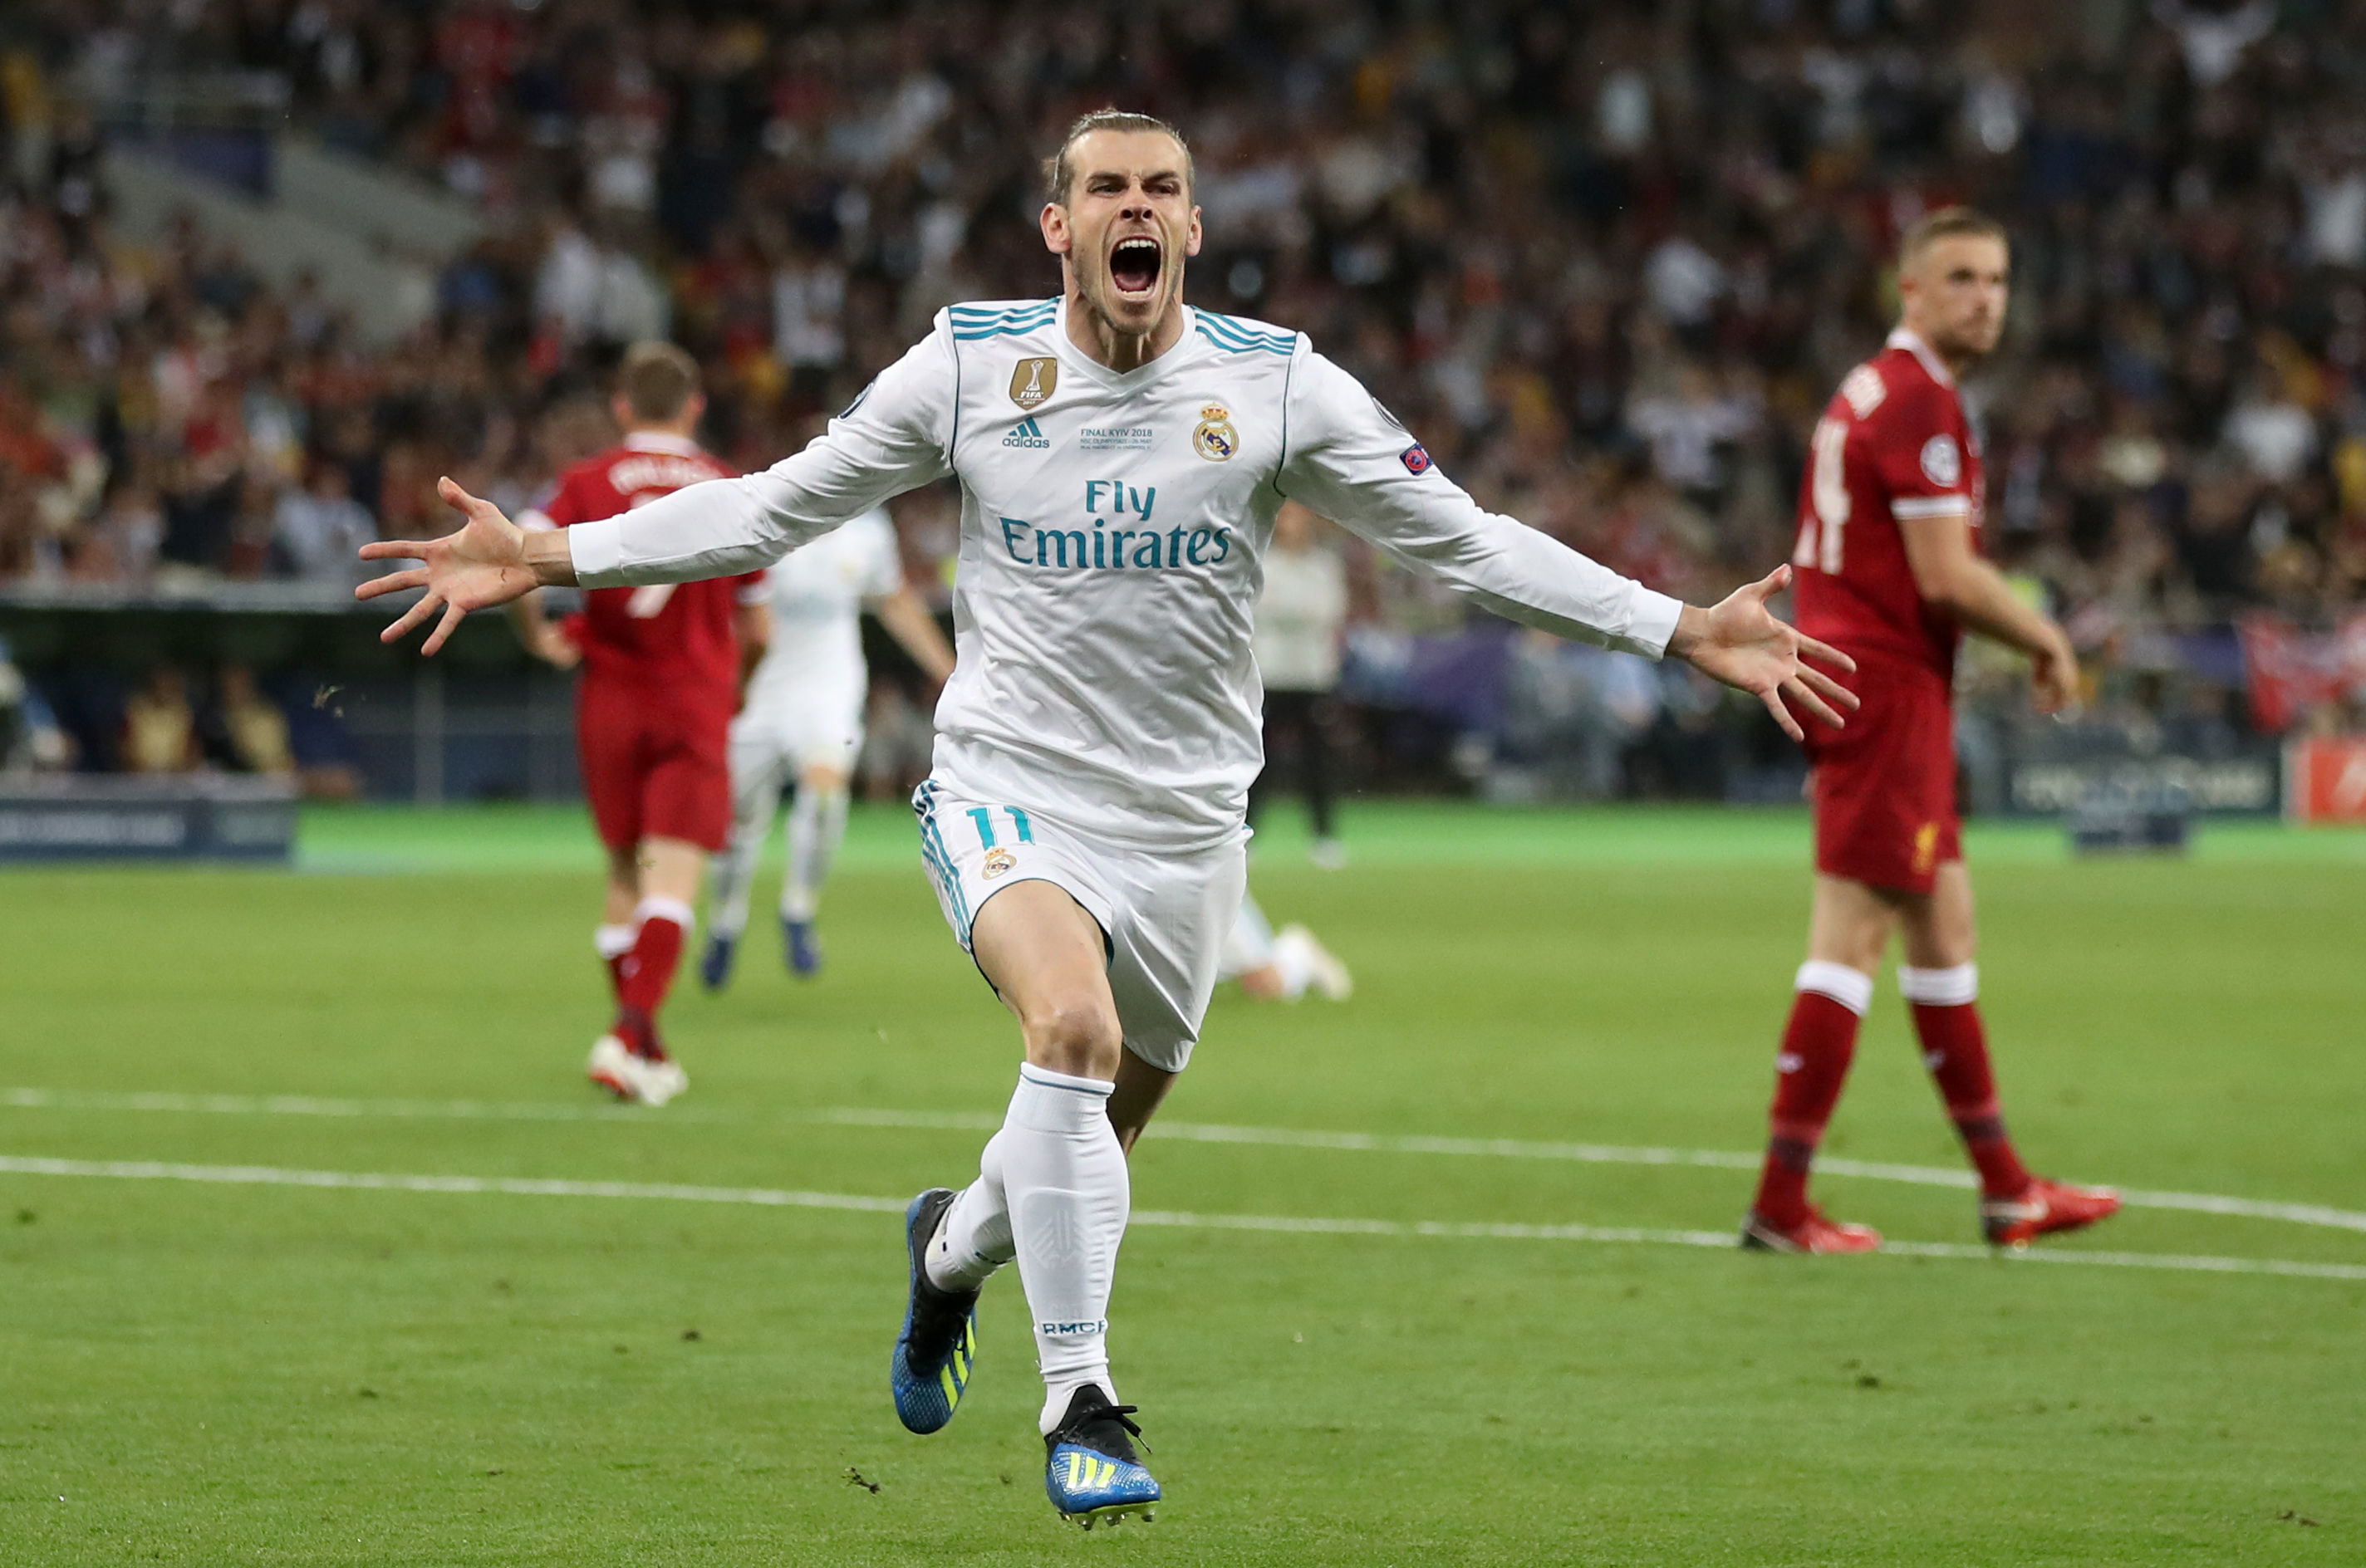 Bale in happier times for Madrid - celebrating his wonder goal against Liverpool in the 2018 Champions League final